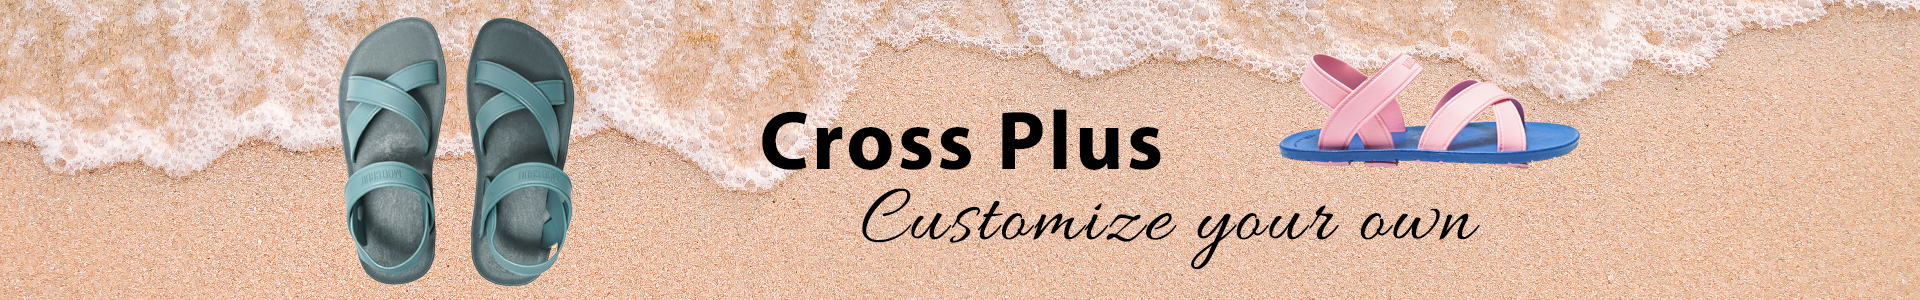 Customize your own Cross Plus Flip Flop with Moochuu India